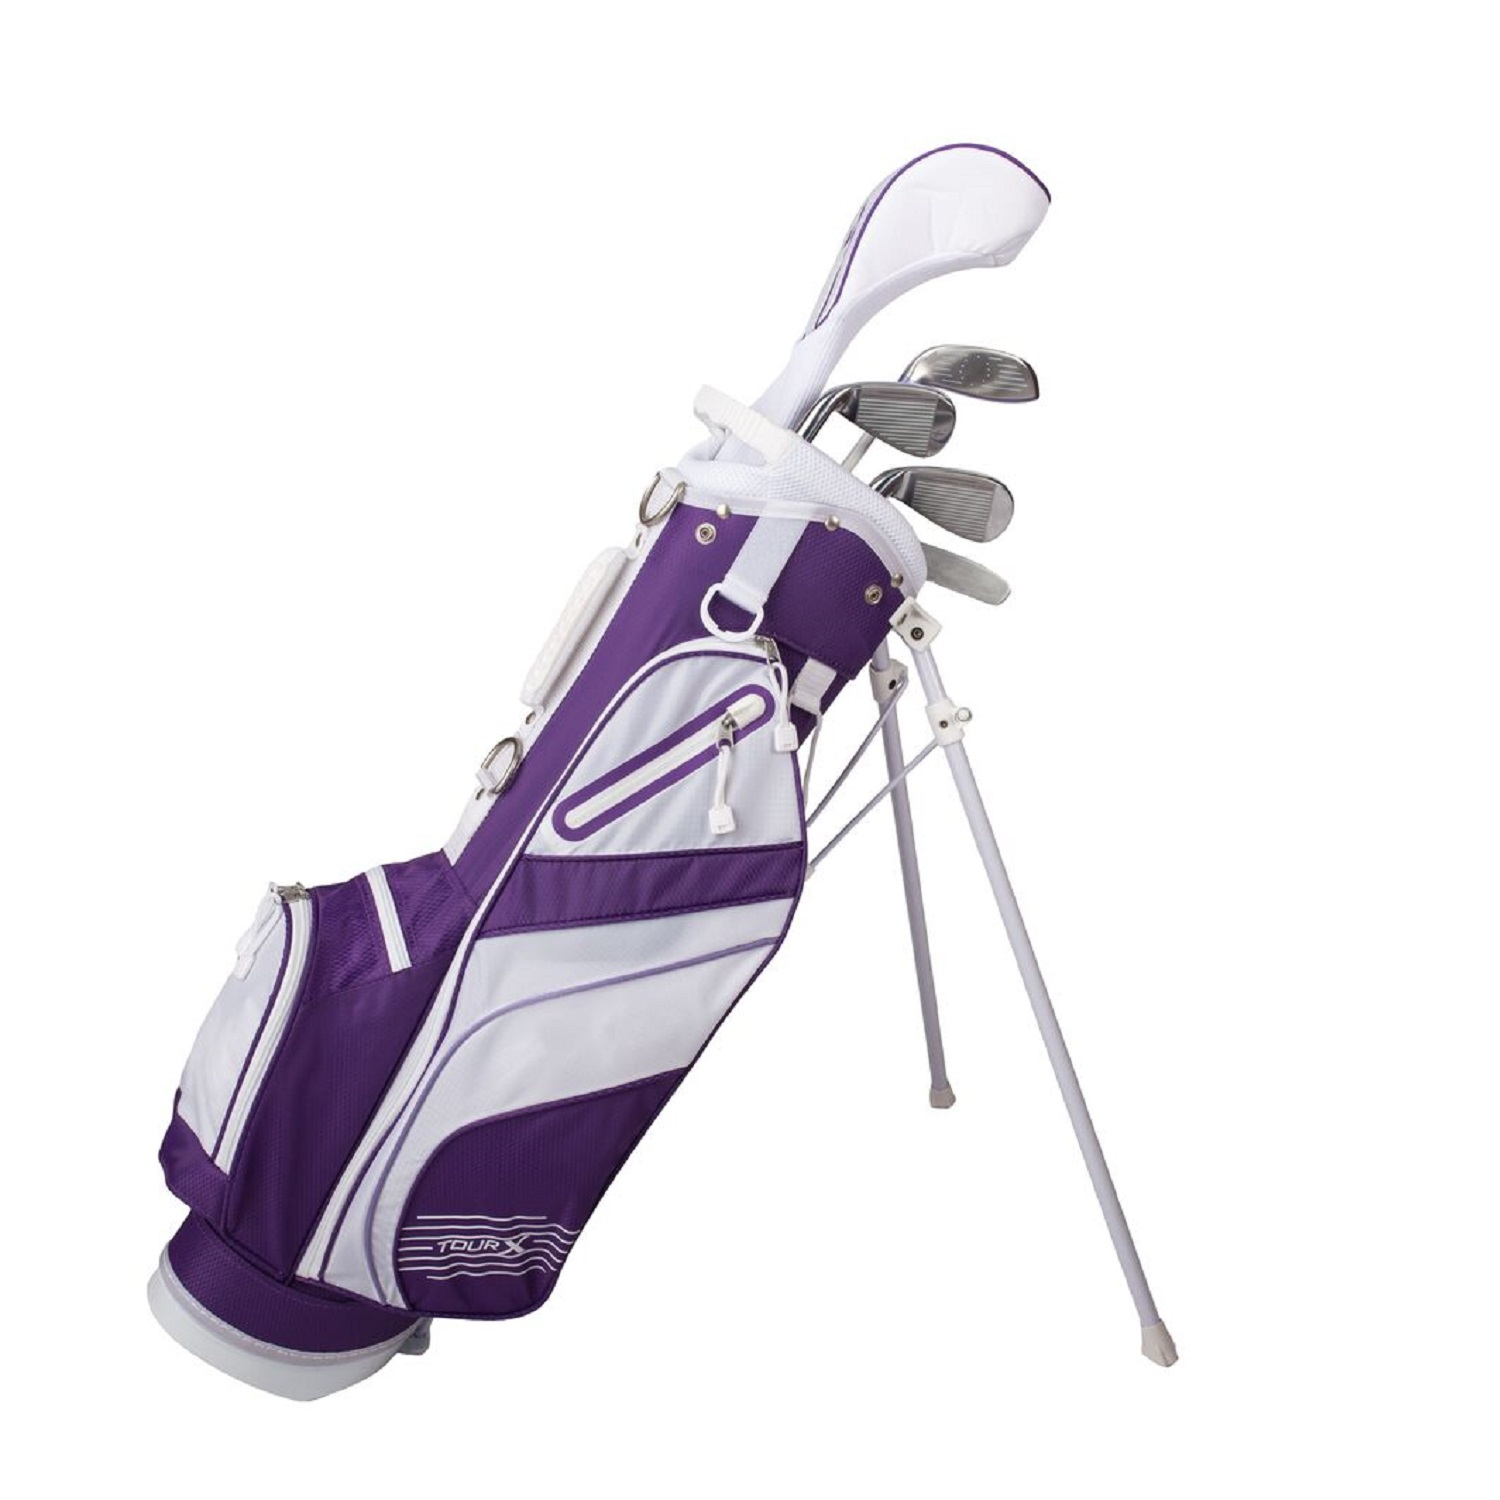 Tour X Size 2 Purple 5pc Jr Golf Set w/Stand Bag